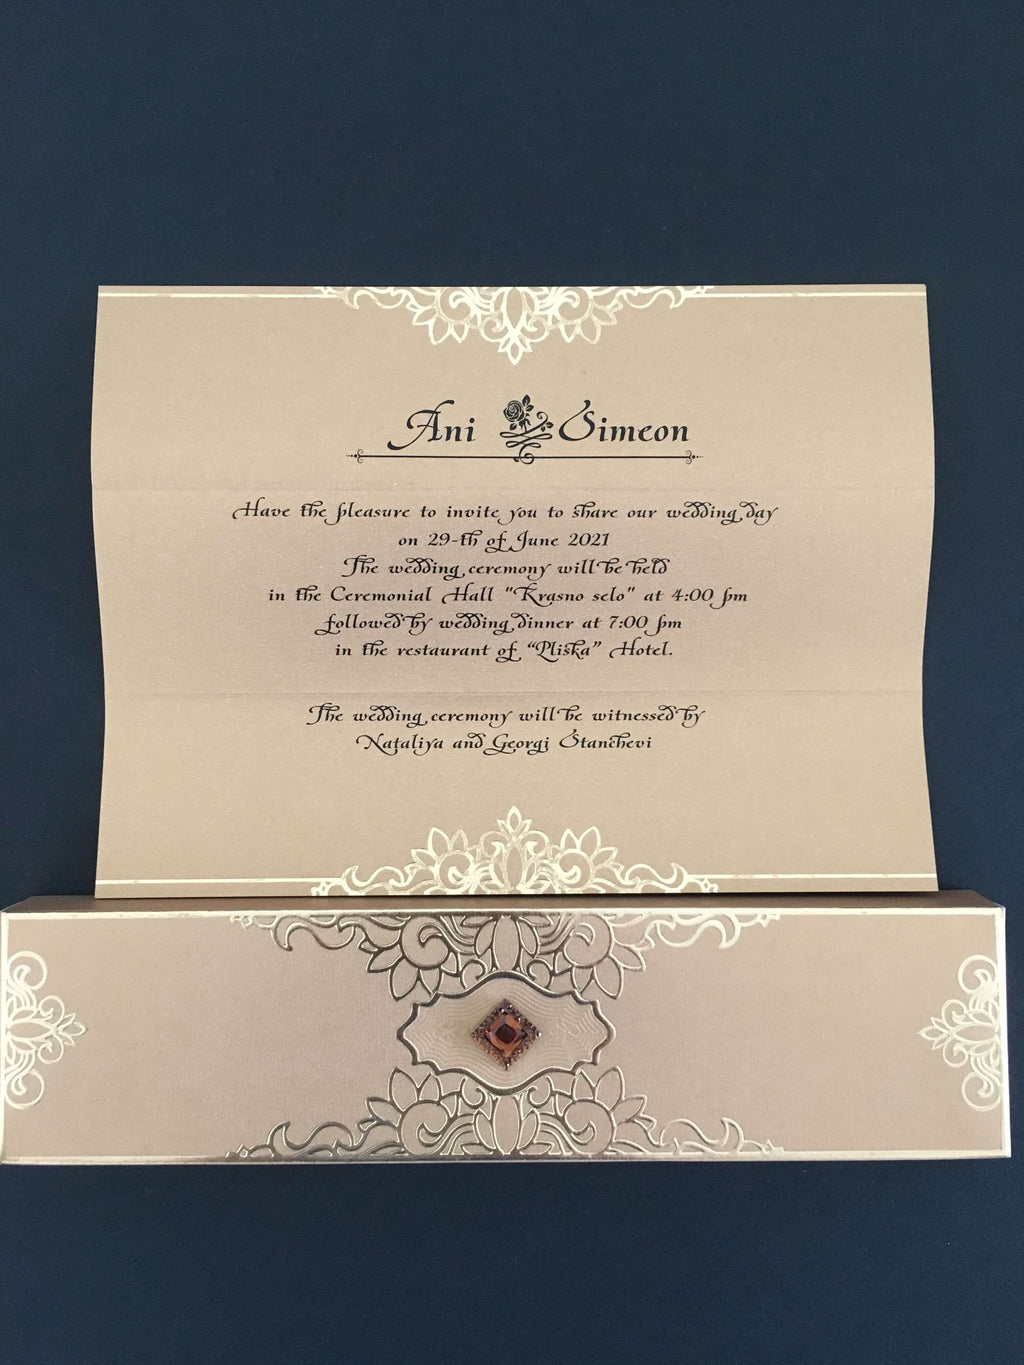 shaadi cards - weddingcardsuk.com